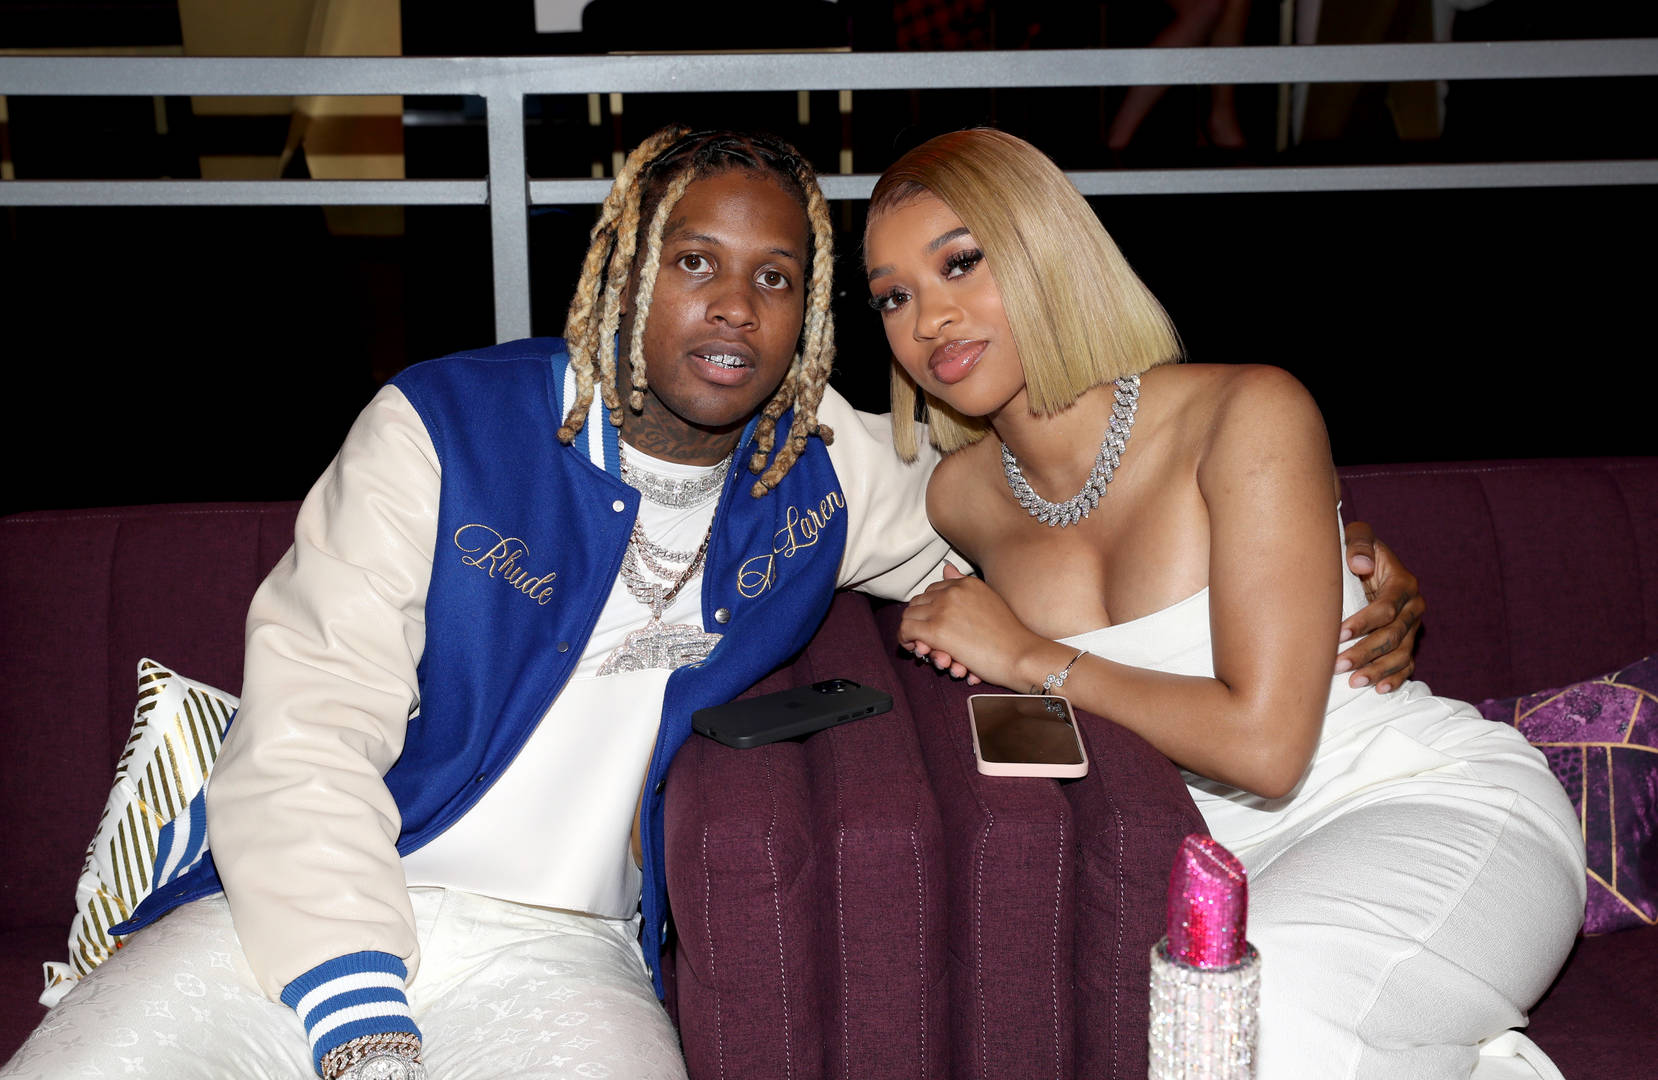 LIL DURK AND INDIA AT BET AWARDS 2021